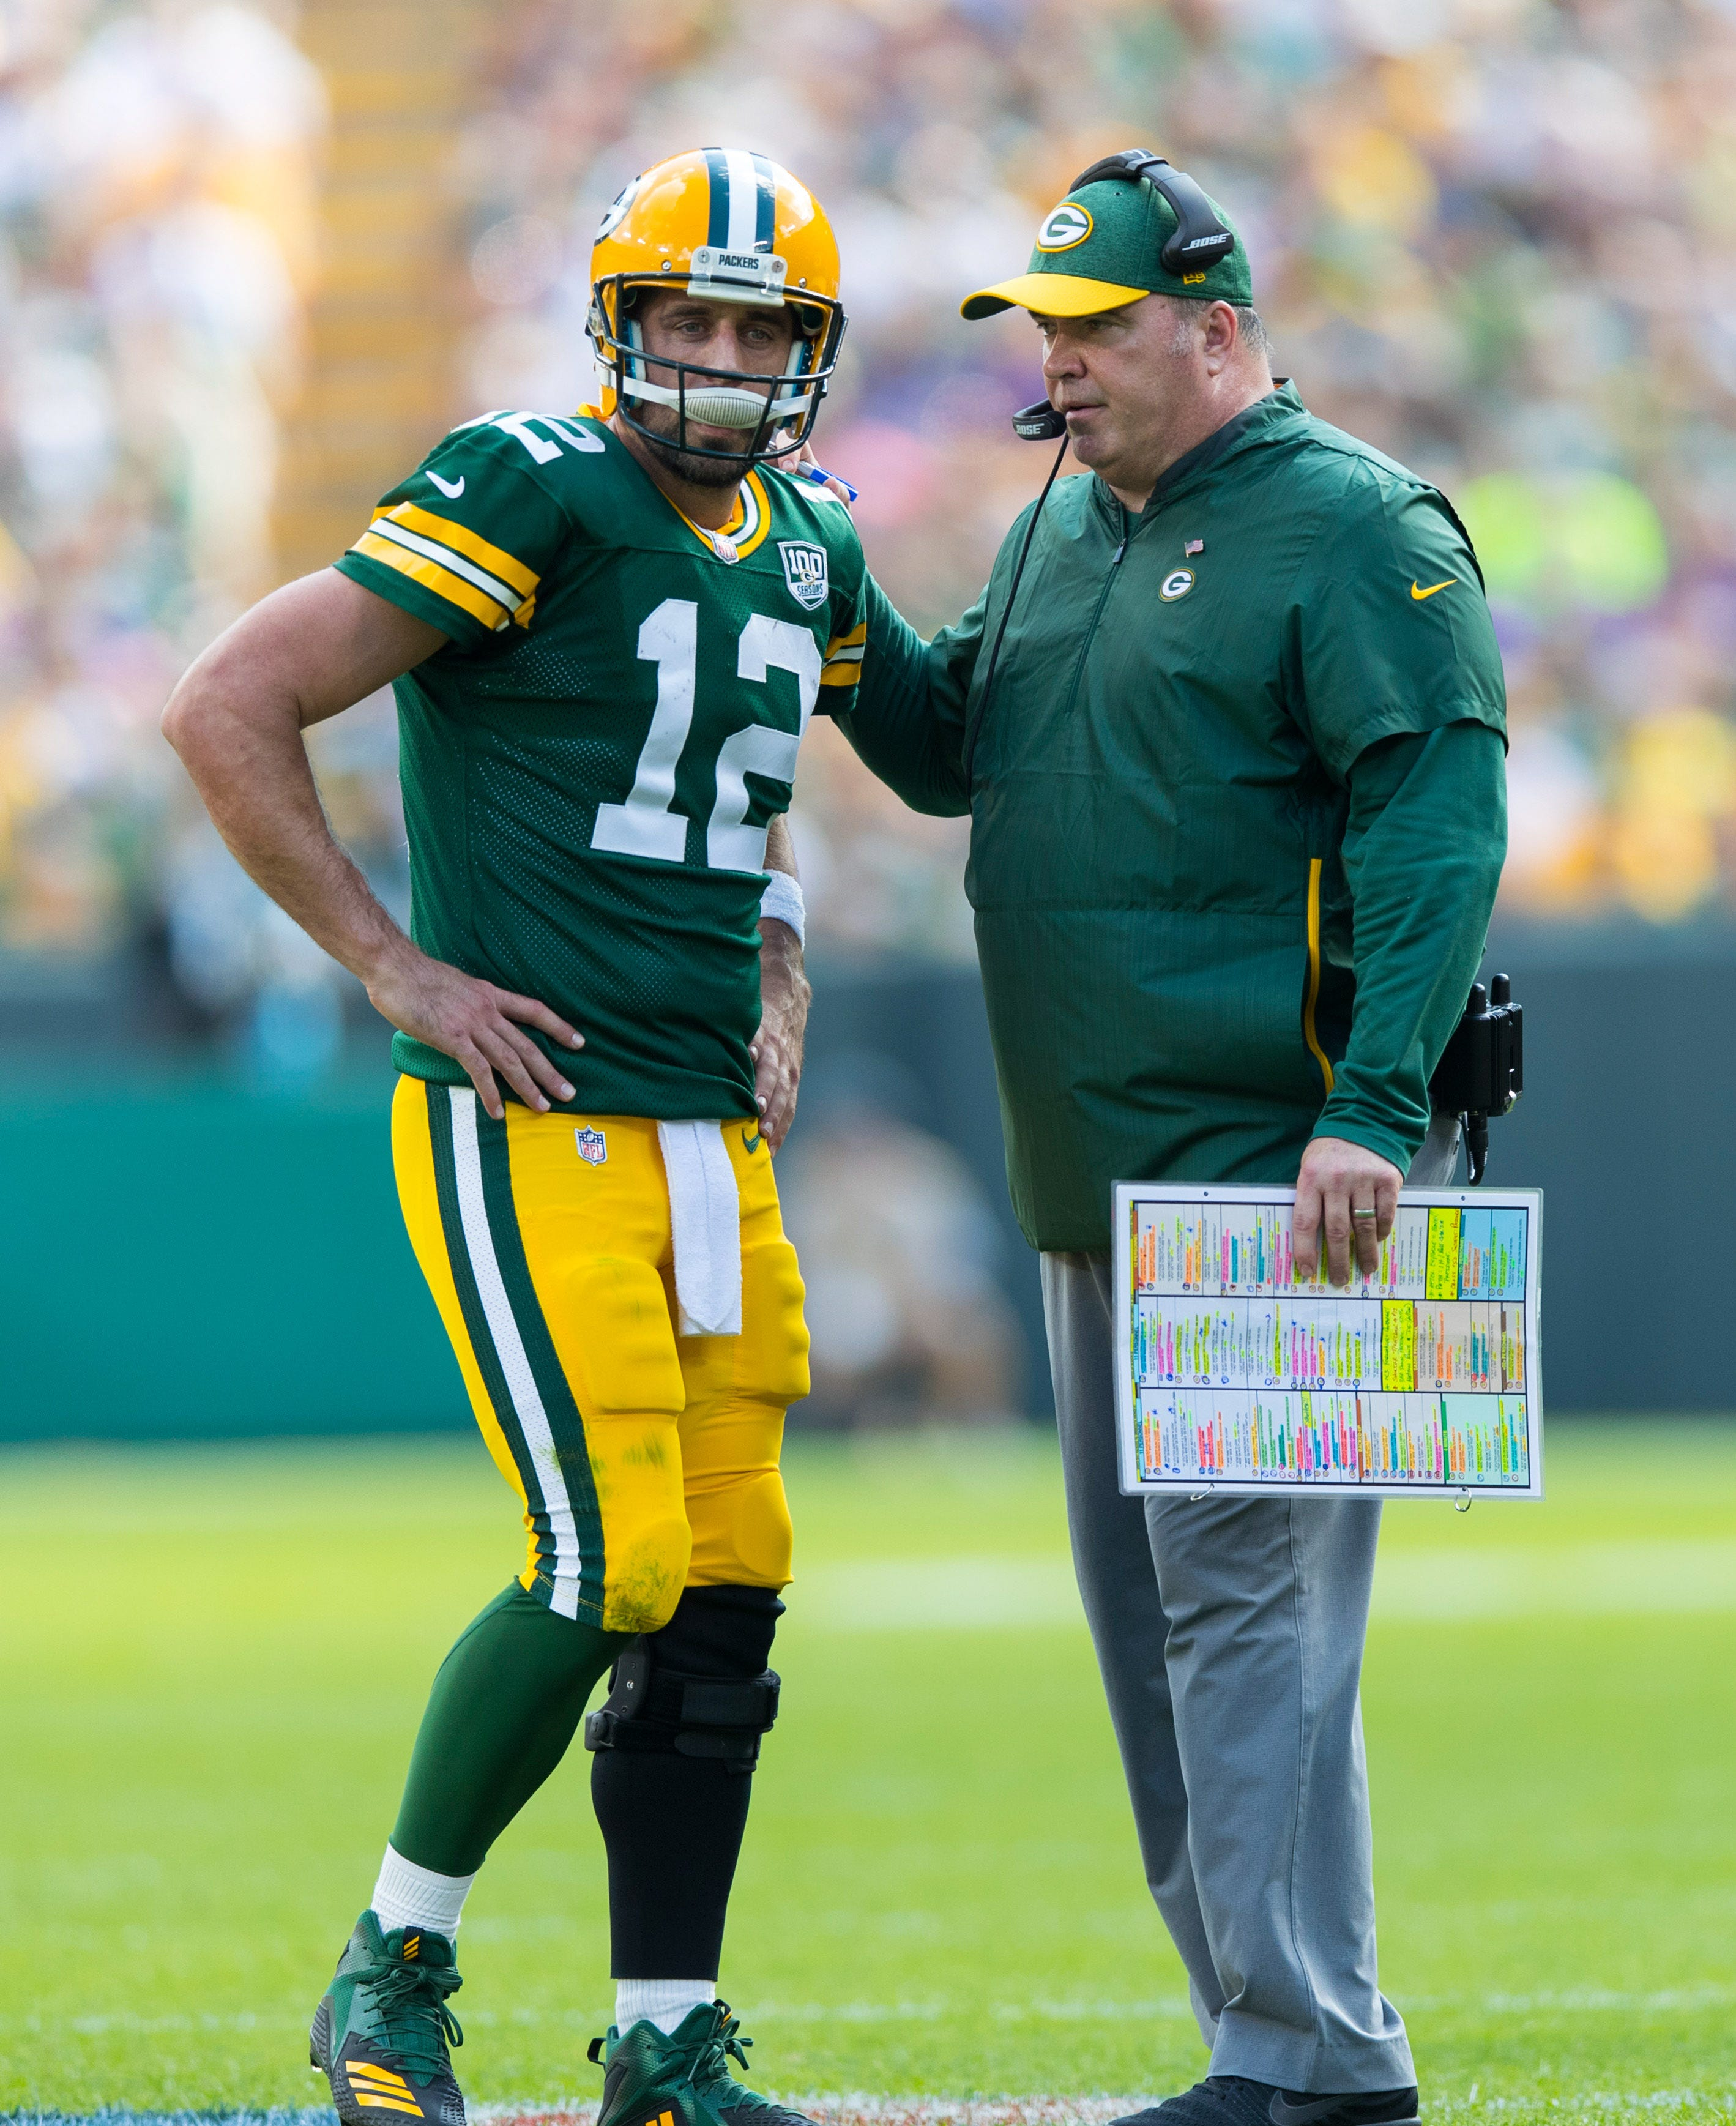 Packers coach Mike McCarthy downplays notion of rift with Aaron Rodgers